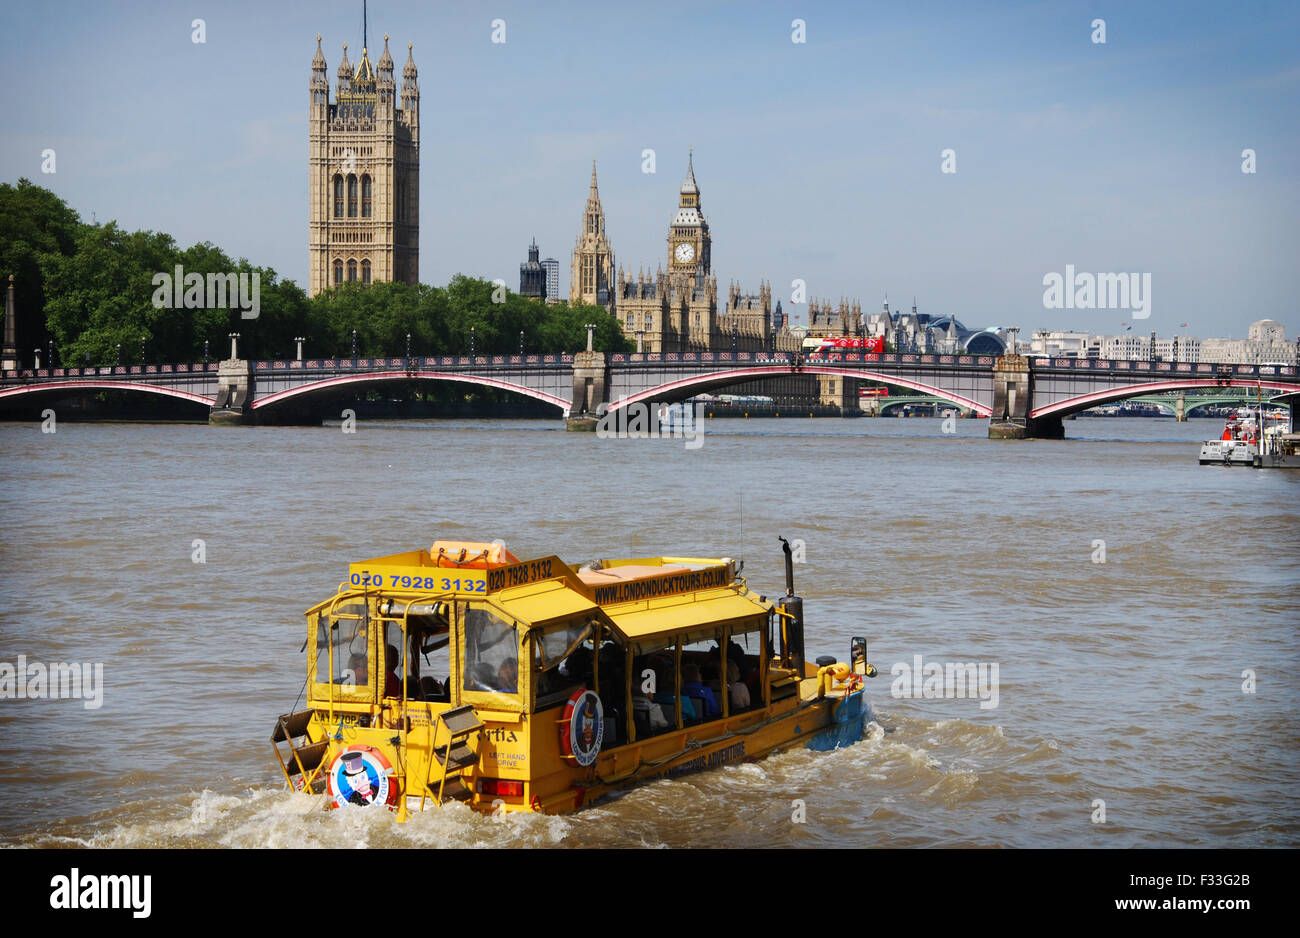 Duck Tours of London, Amphibious vehicle in the river Thames, London UK - Stock Image